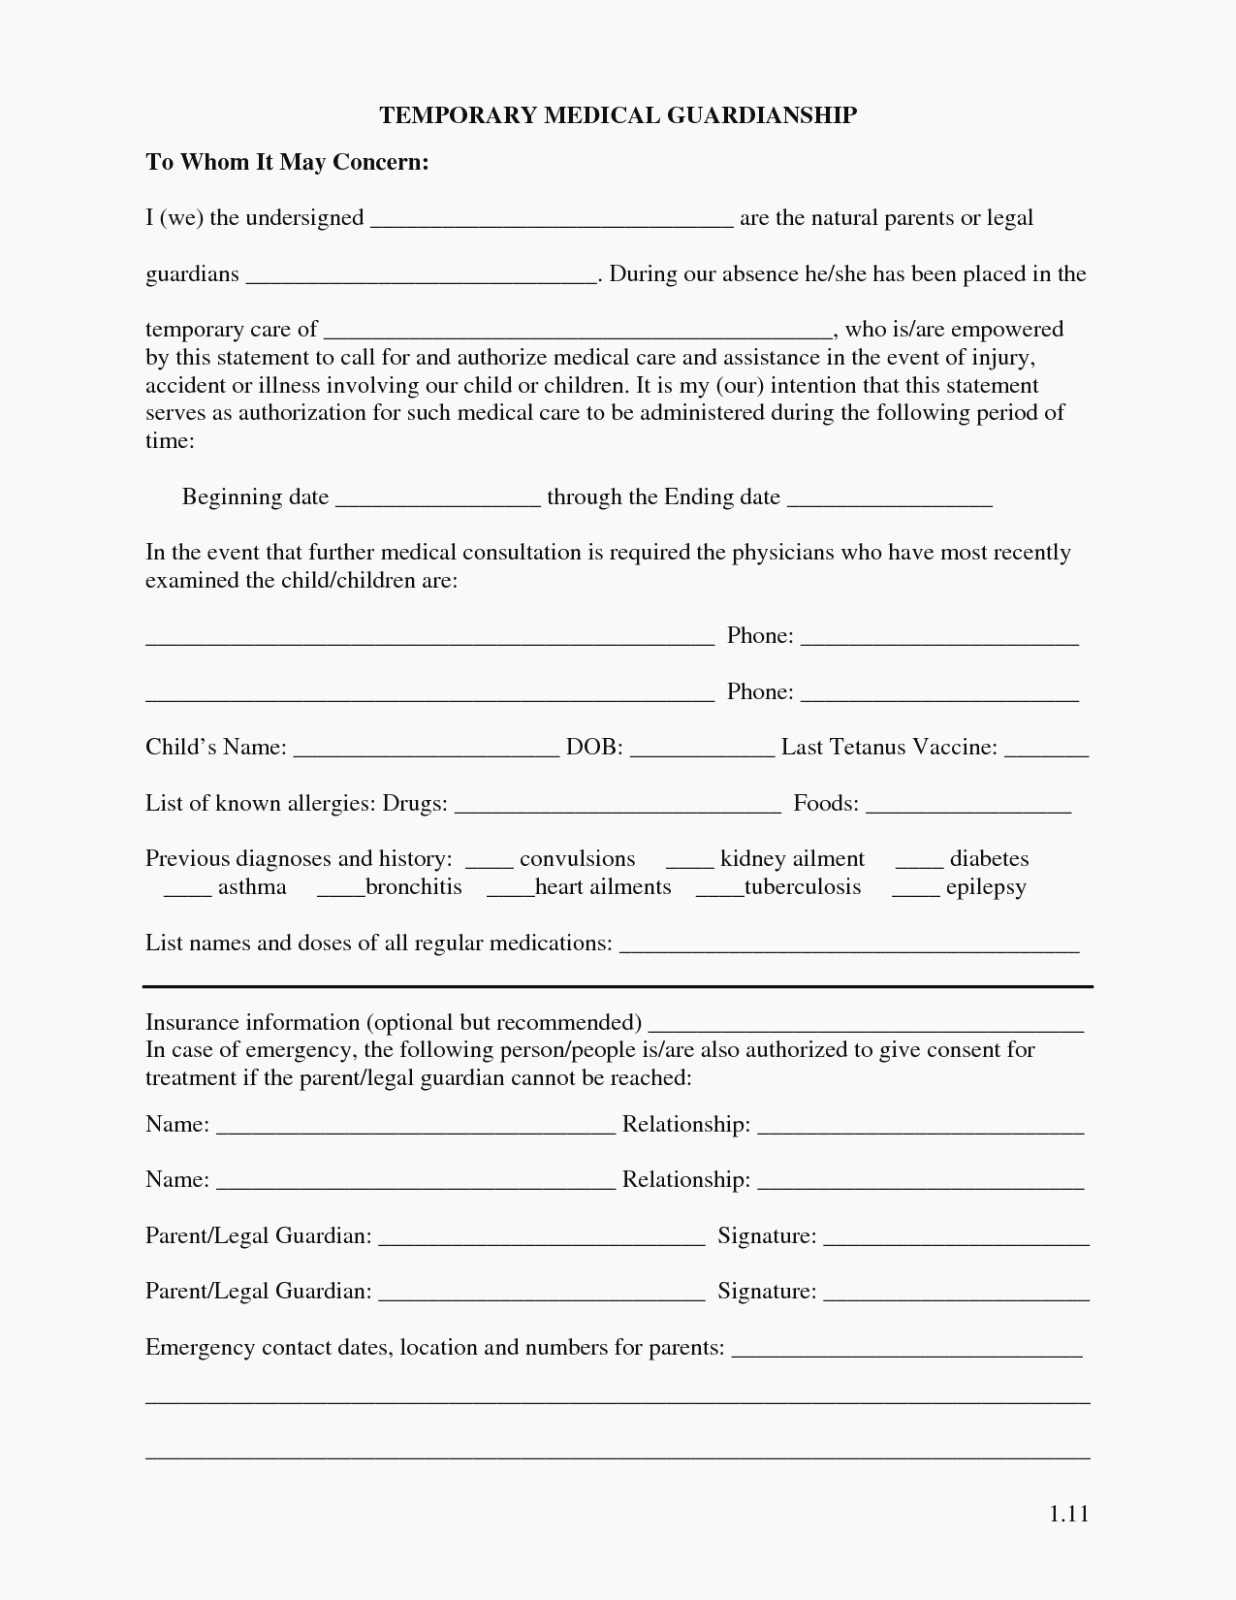 Free Temporary Guardianship form Elegant attending Legal Temporary Custody